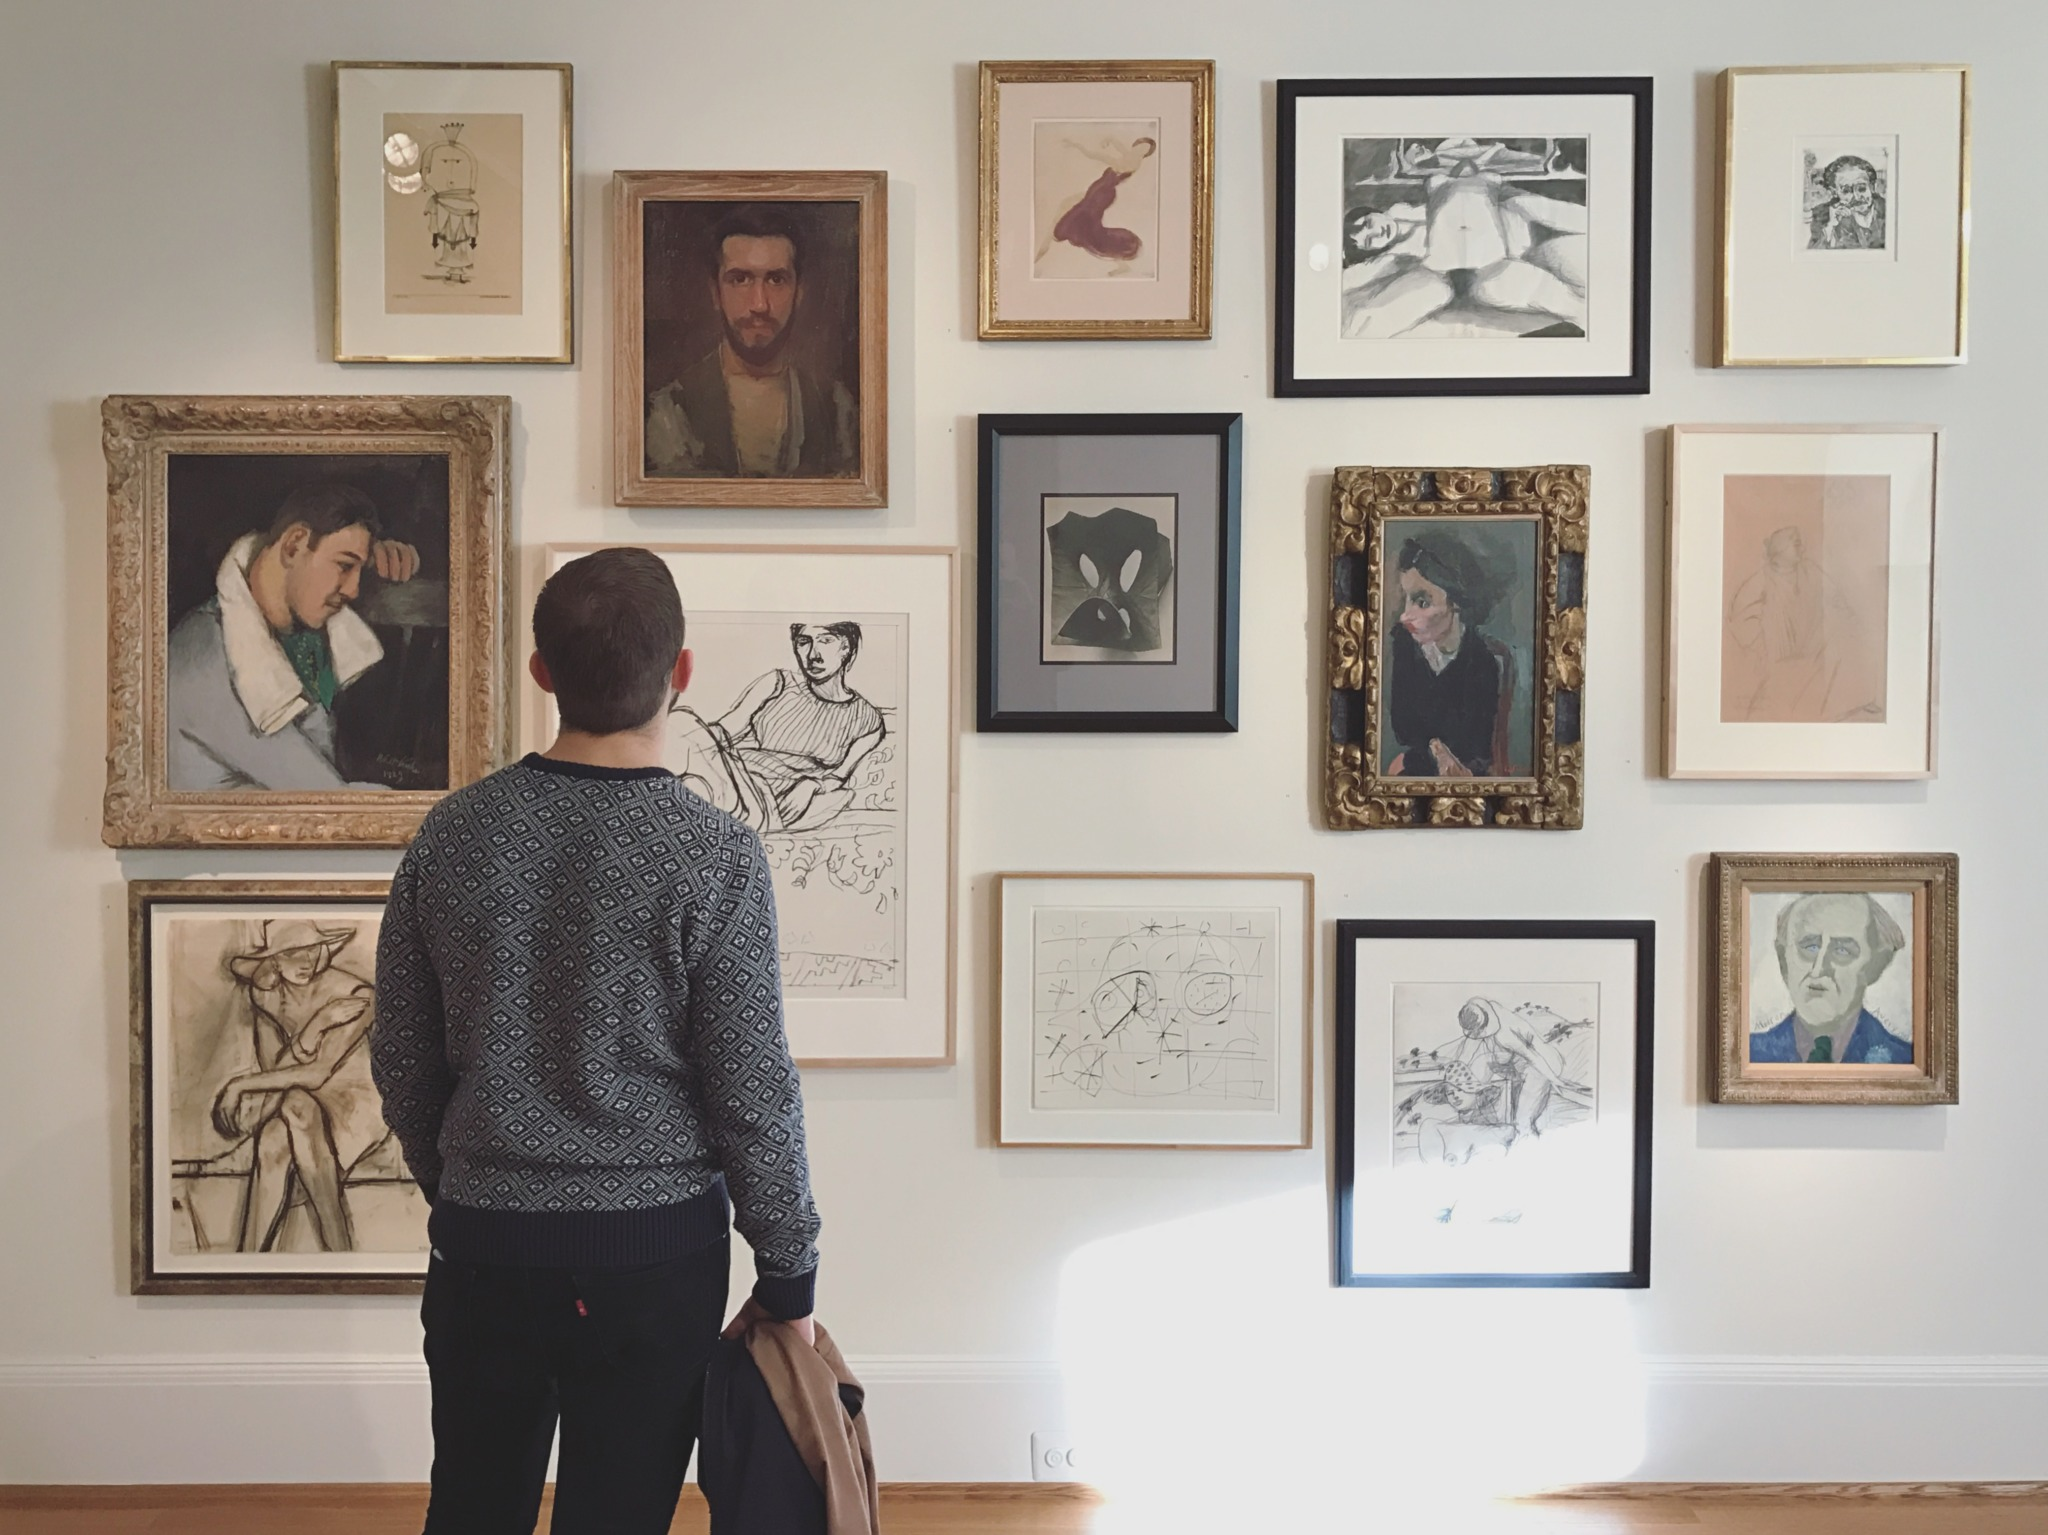 Man Looks at Phillips Collection Paintings